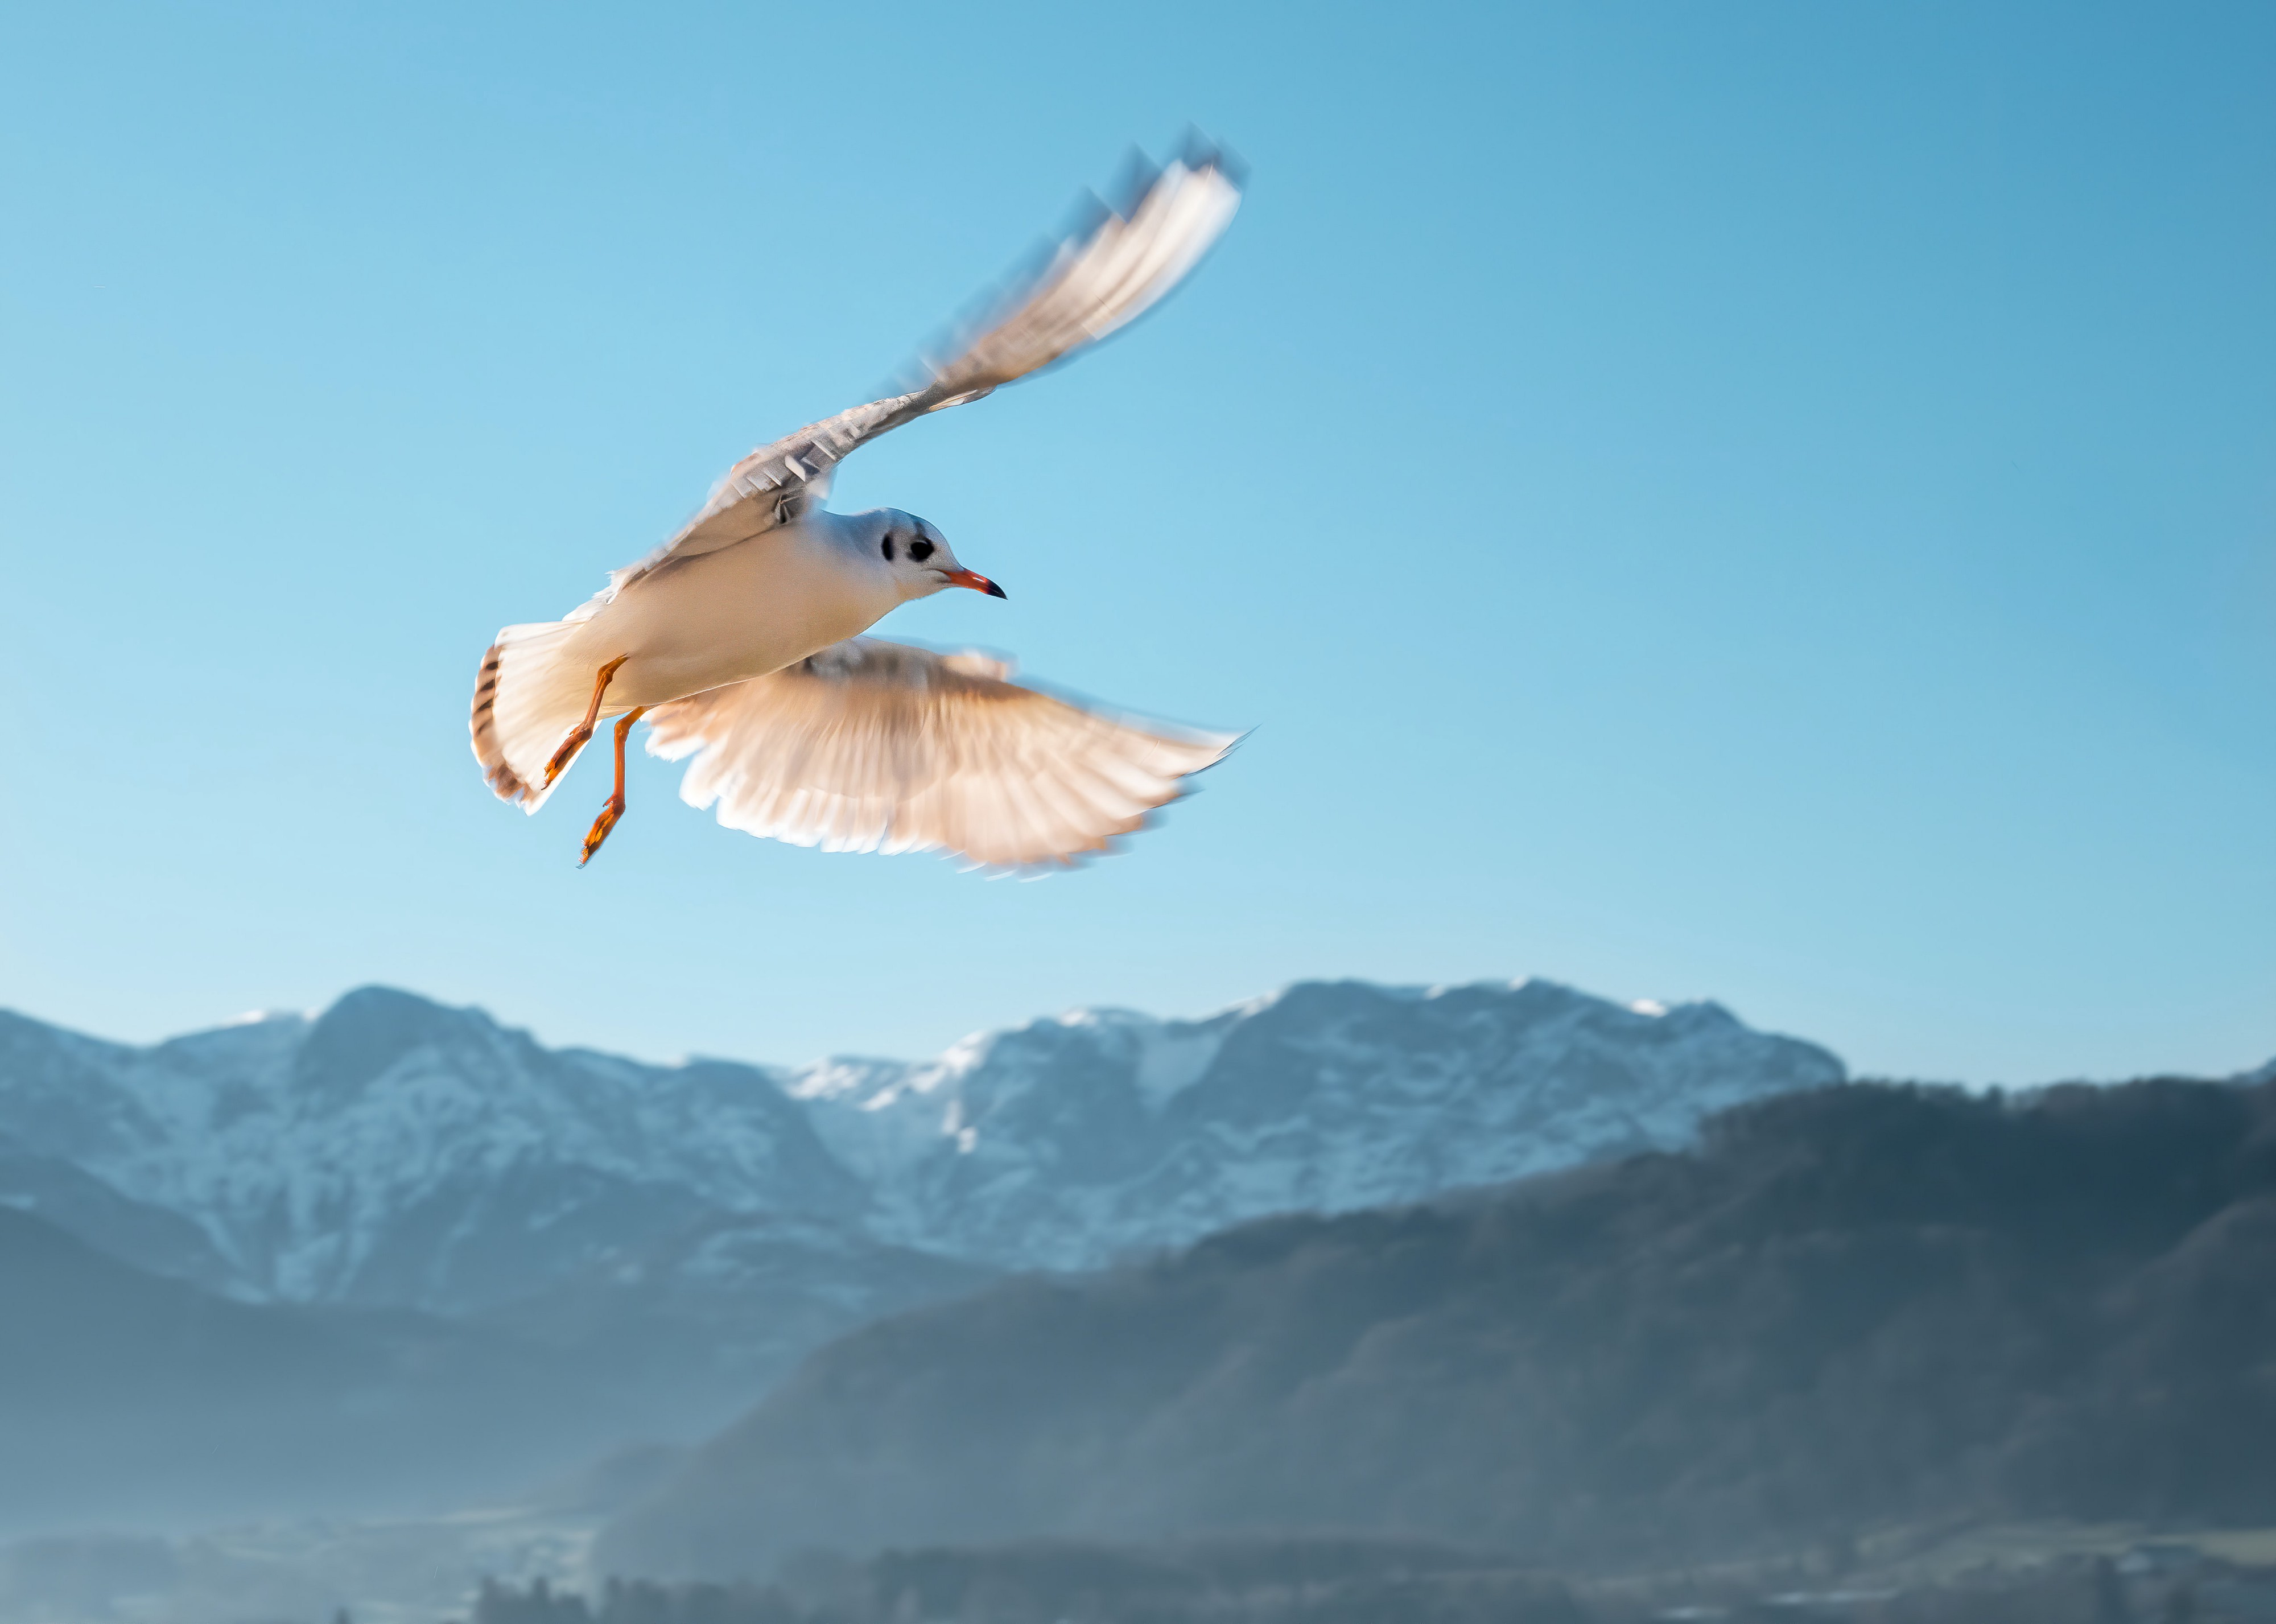 White and brown bird on air